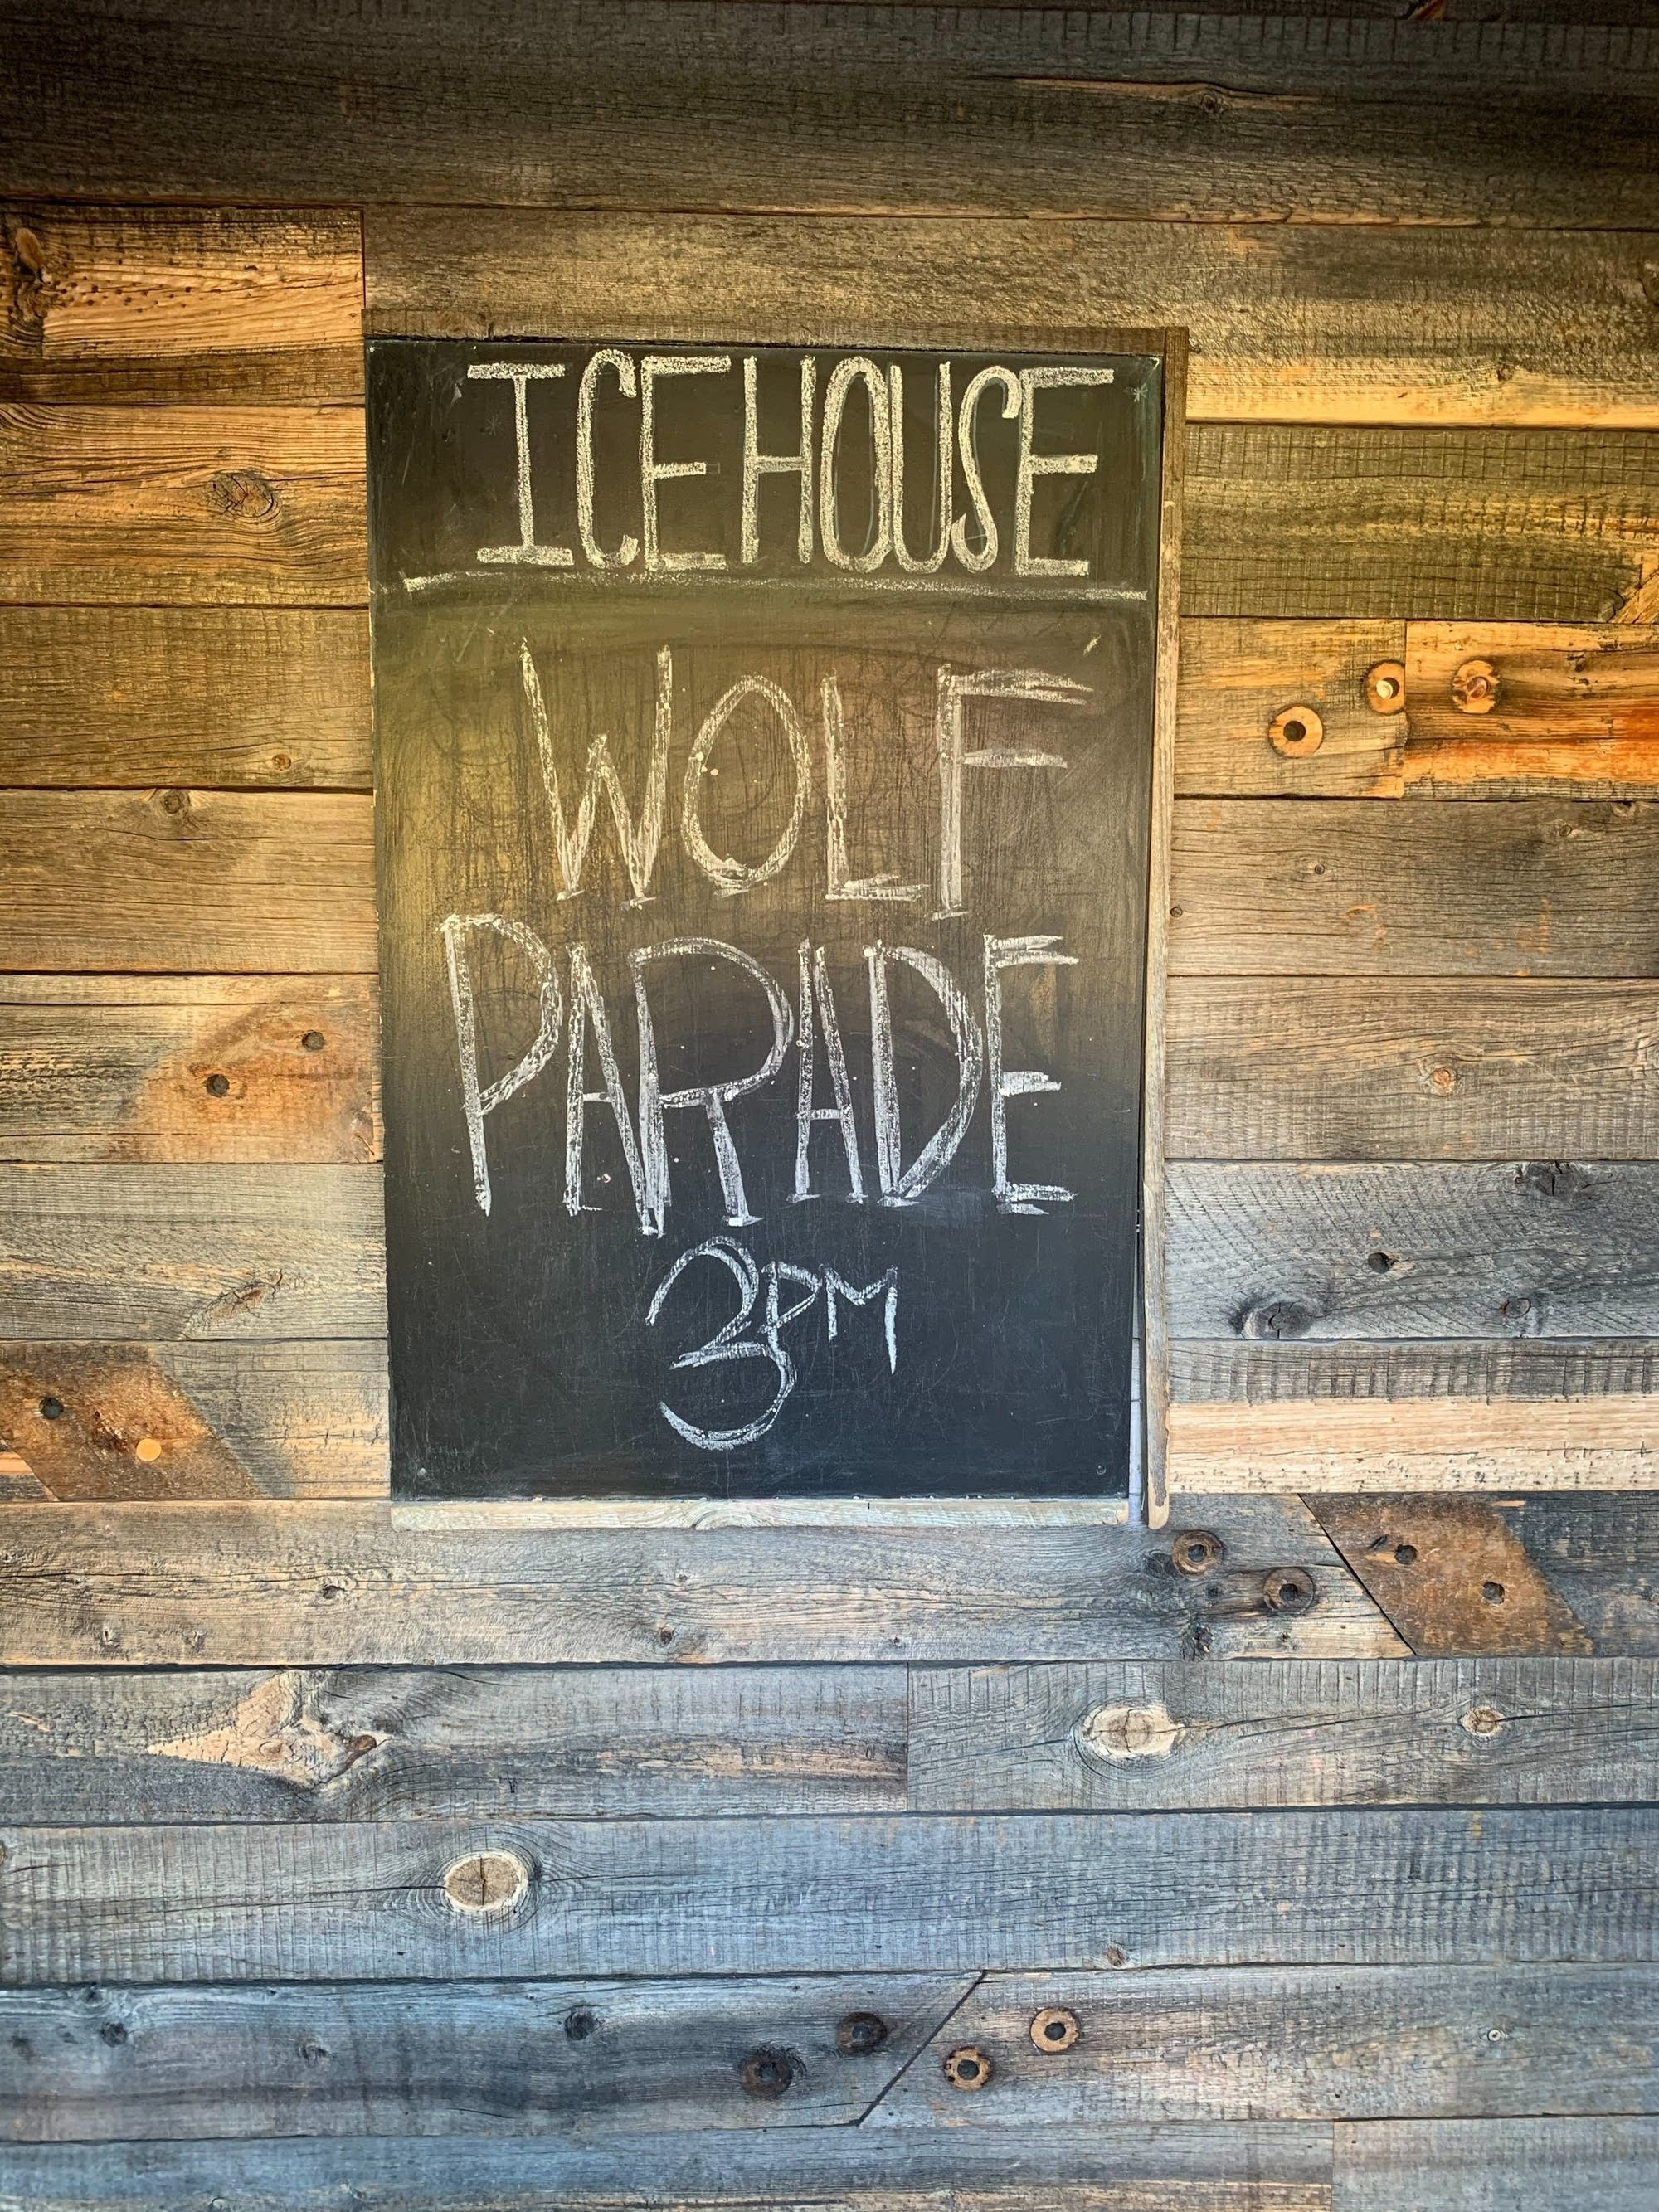 Wolf Parade Microshow at Icehouse